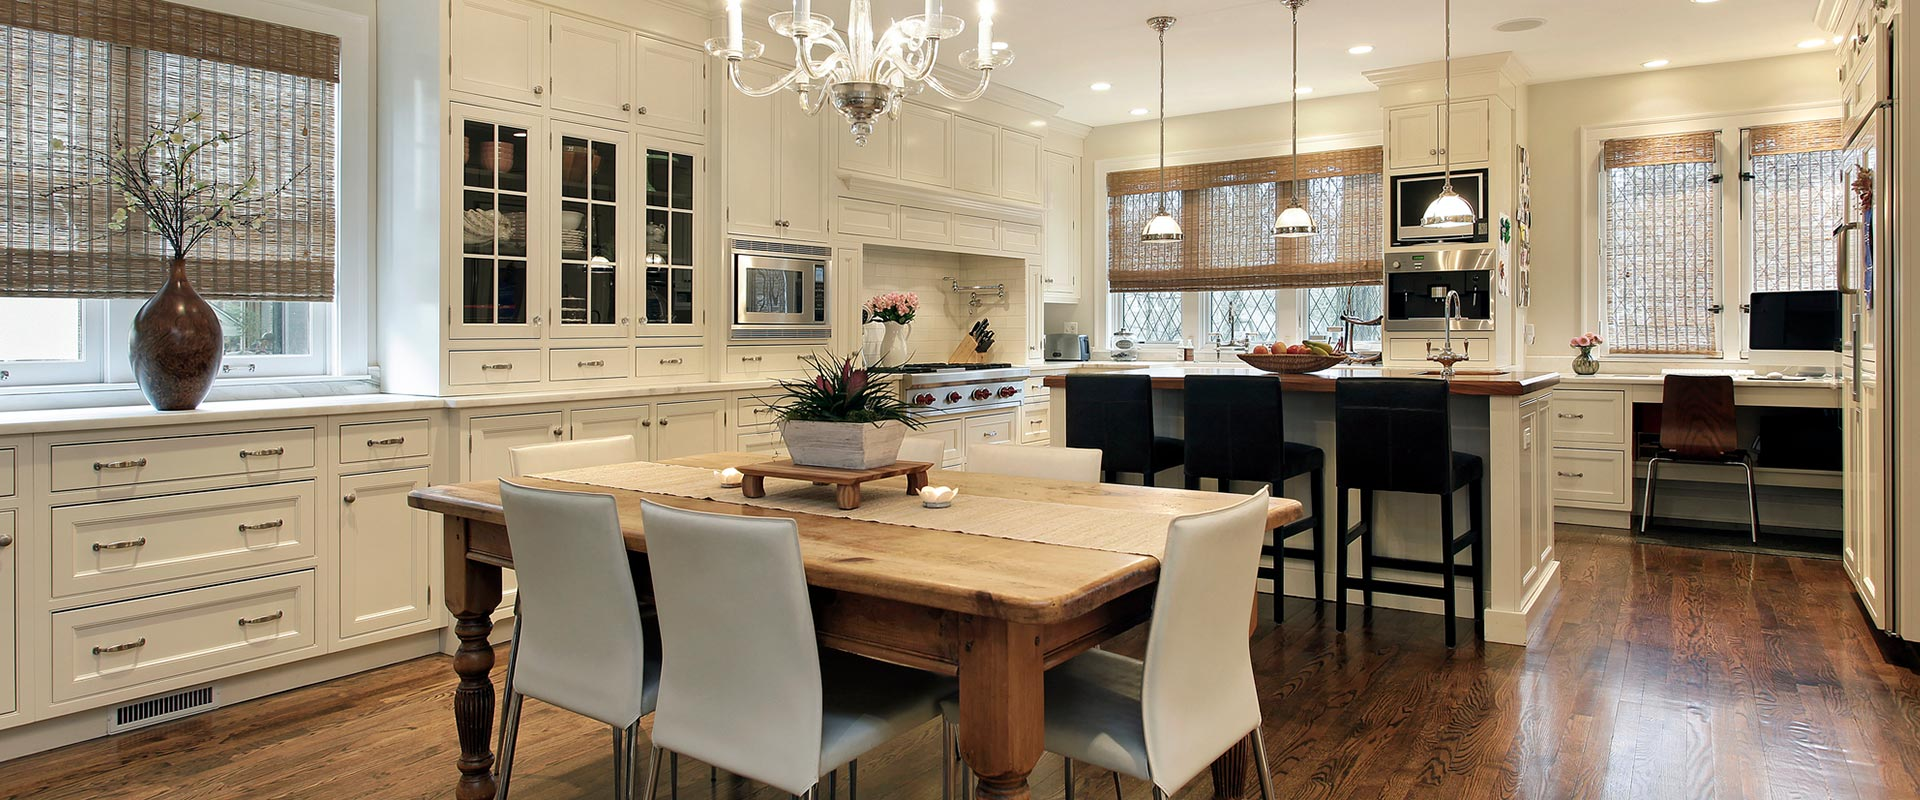 Image of a kitchen for house management